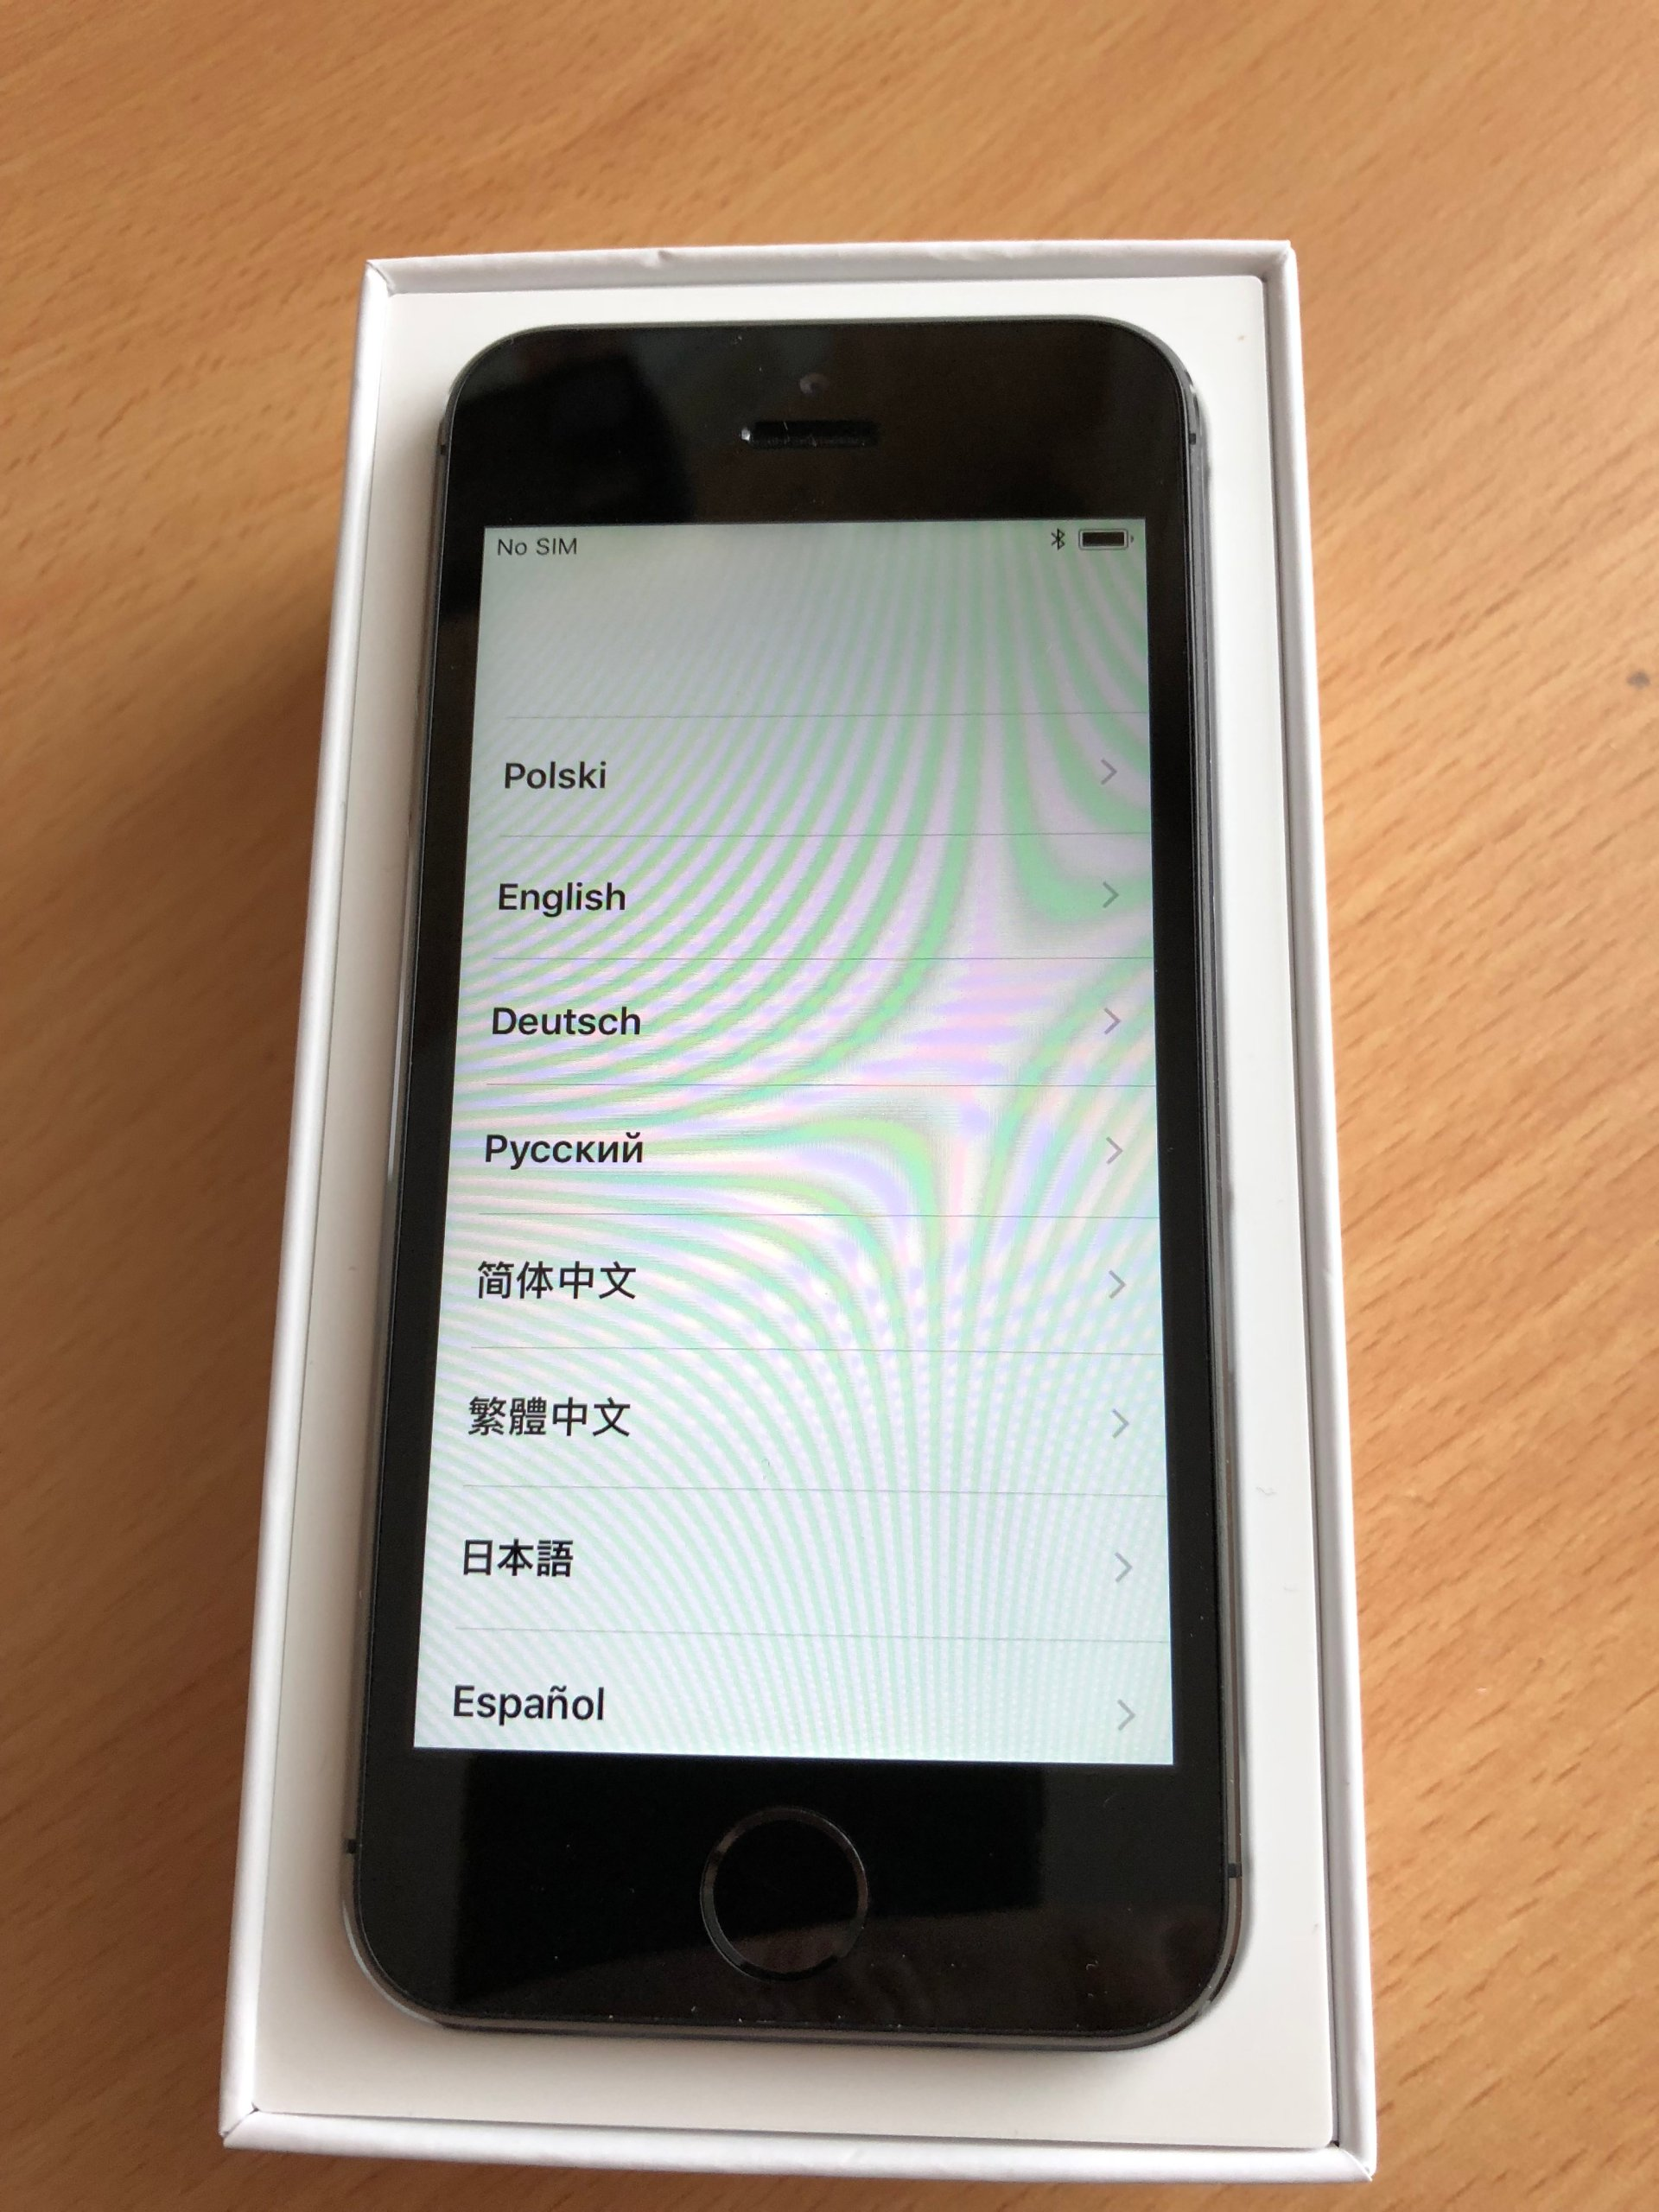 1736315b55076a Apple Iphone 5s, black, 16Gb, stan DB, bcm!!! - 7193166326 ...